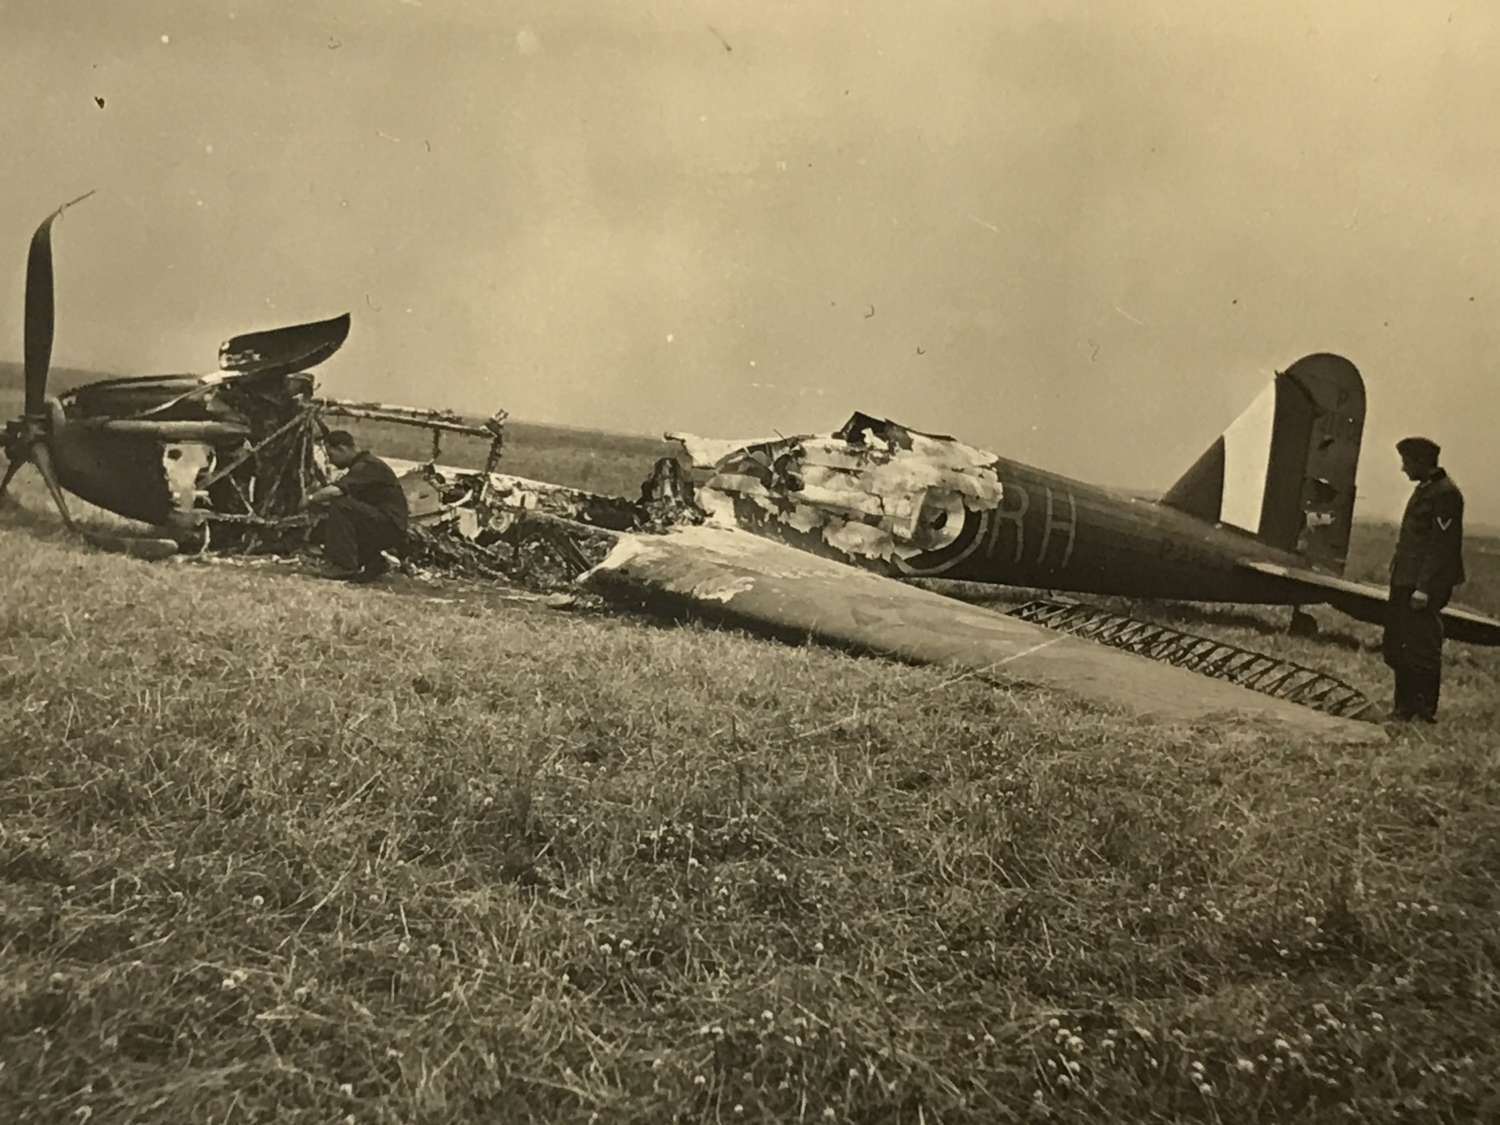 Downed Fairy Battle May 1940